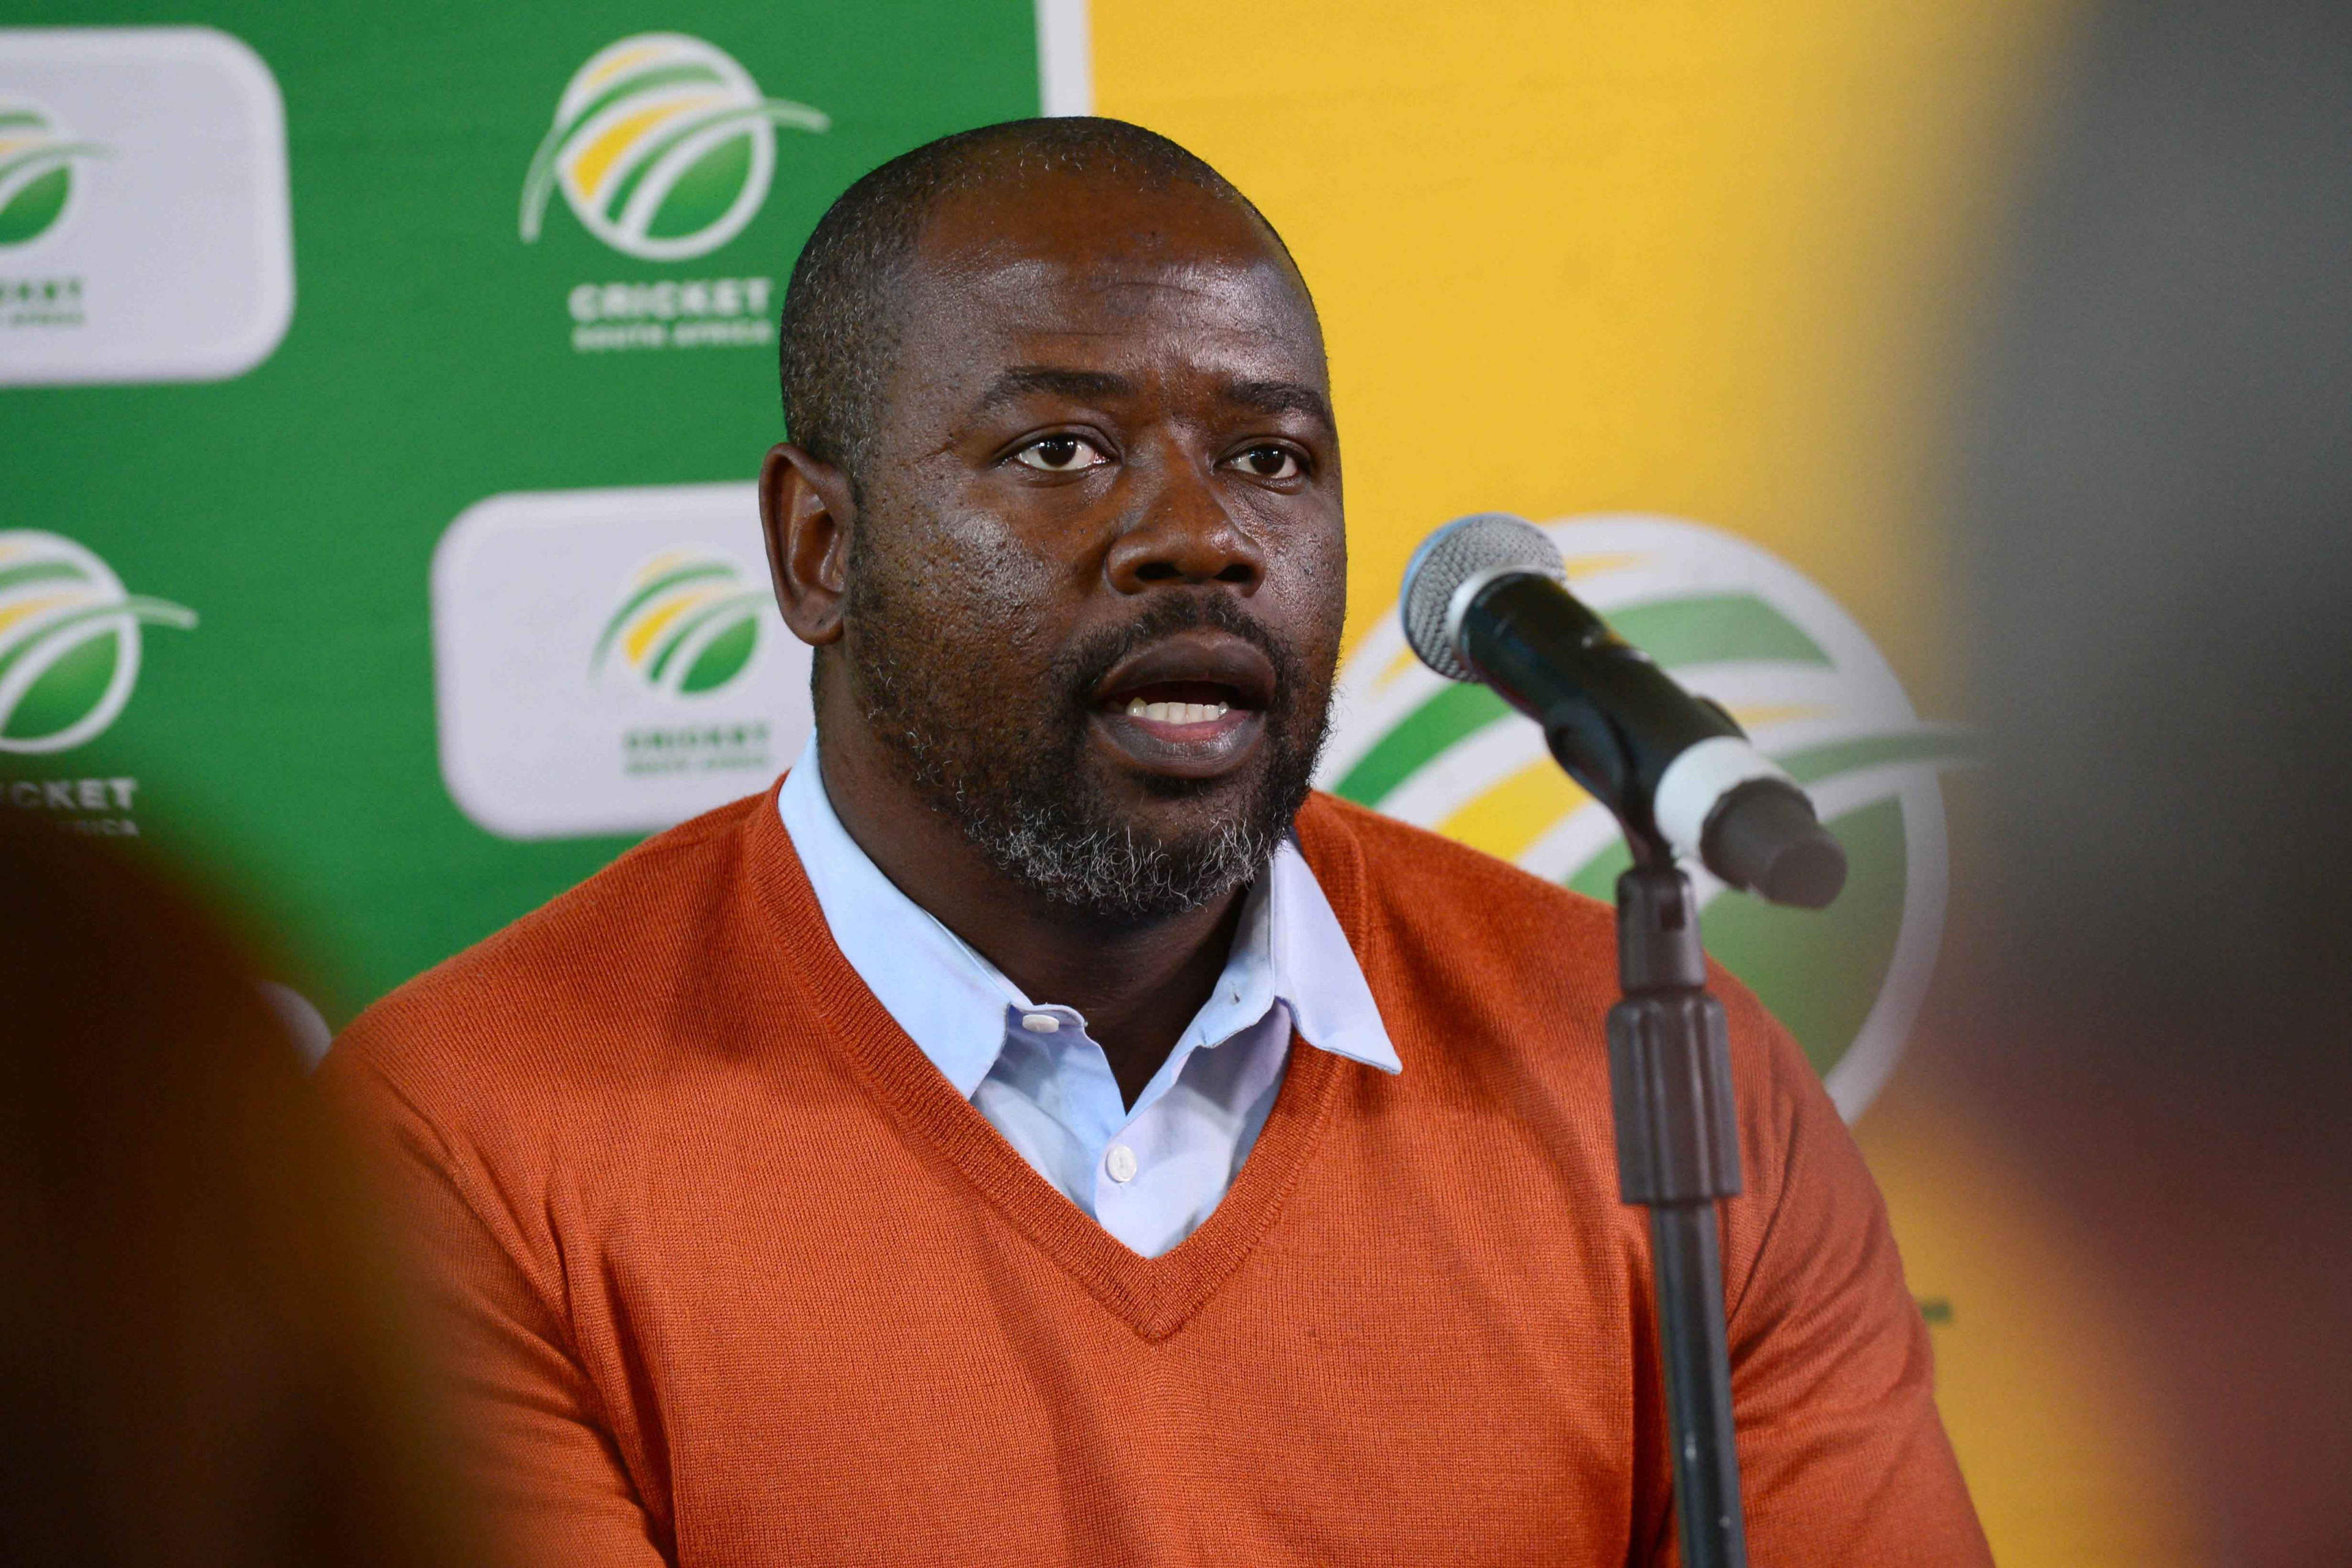 6 October 2017: Cricket South Africa Vice President and acting CEO Thabang Moroe delivering a media briefing at the Mangaung Oval in Bloemfontein. (Photo by Lee Warren/Gallo Images)